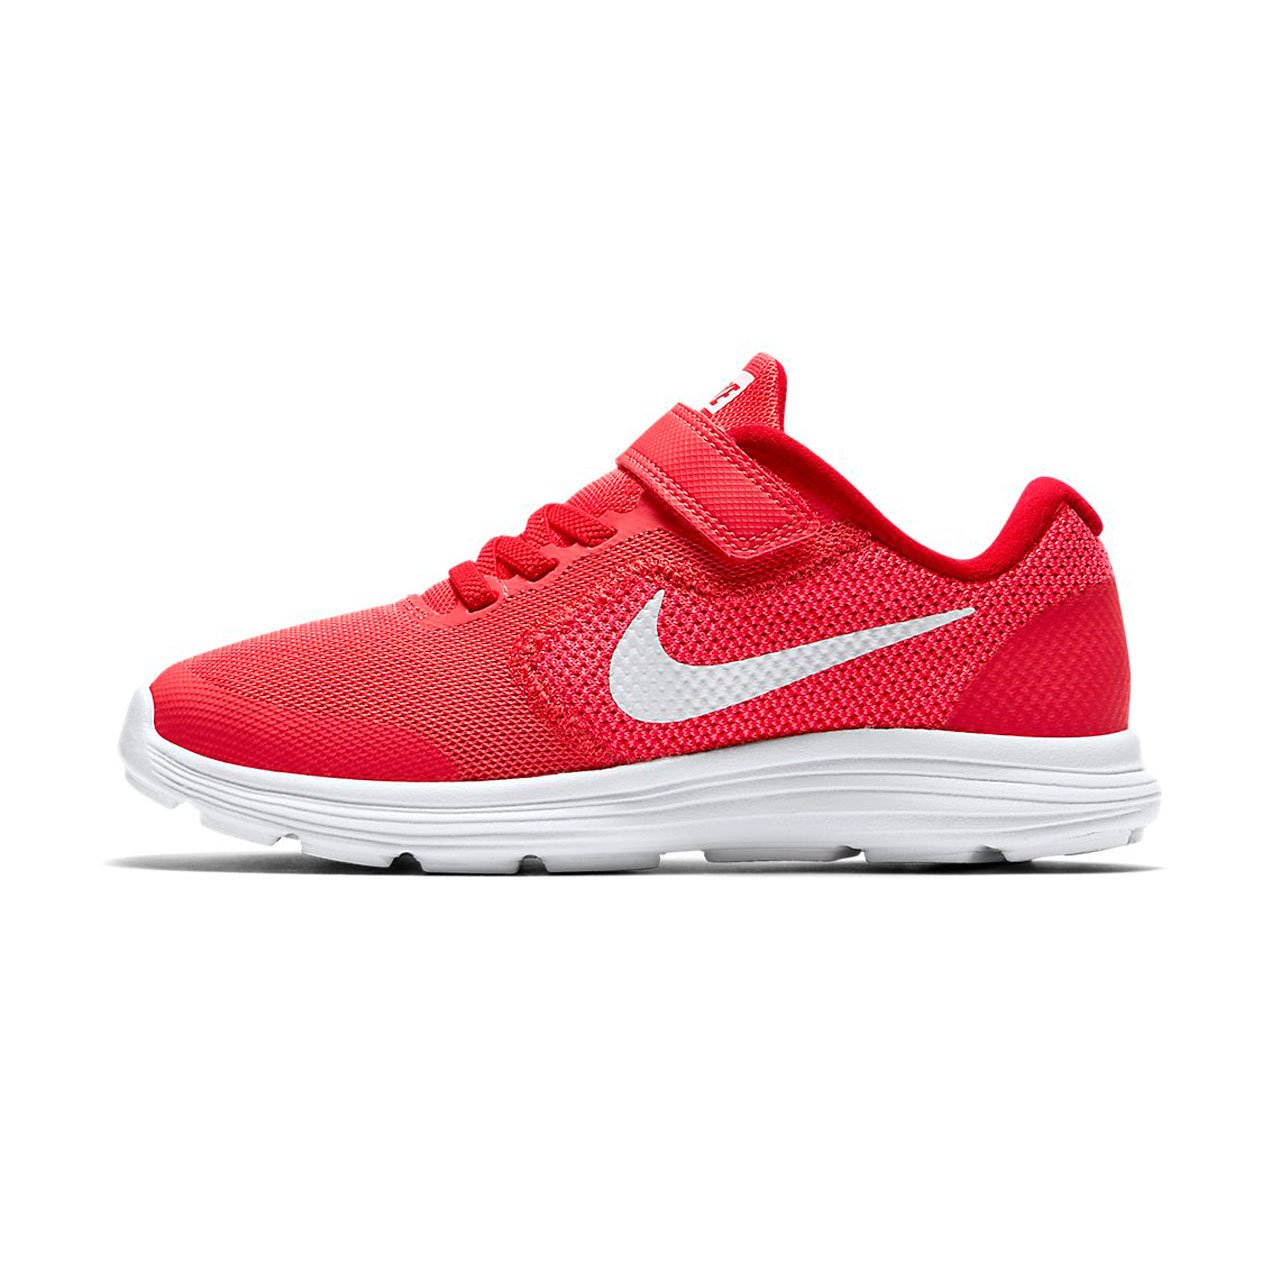 Man/Woman Nike Kids' Kids' Kids' Revolution 3 (GS) Running Shoes excellent quality Win the praise of customers Amoy HB6806 cd24dd